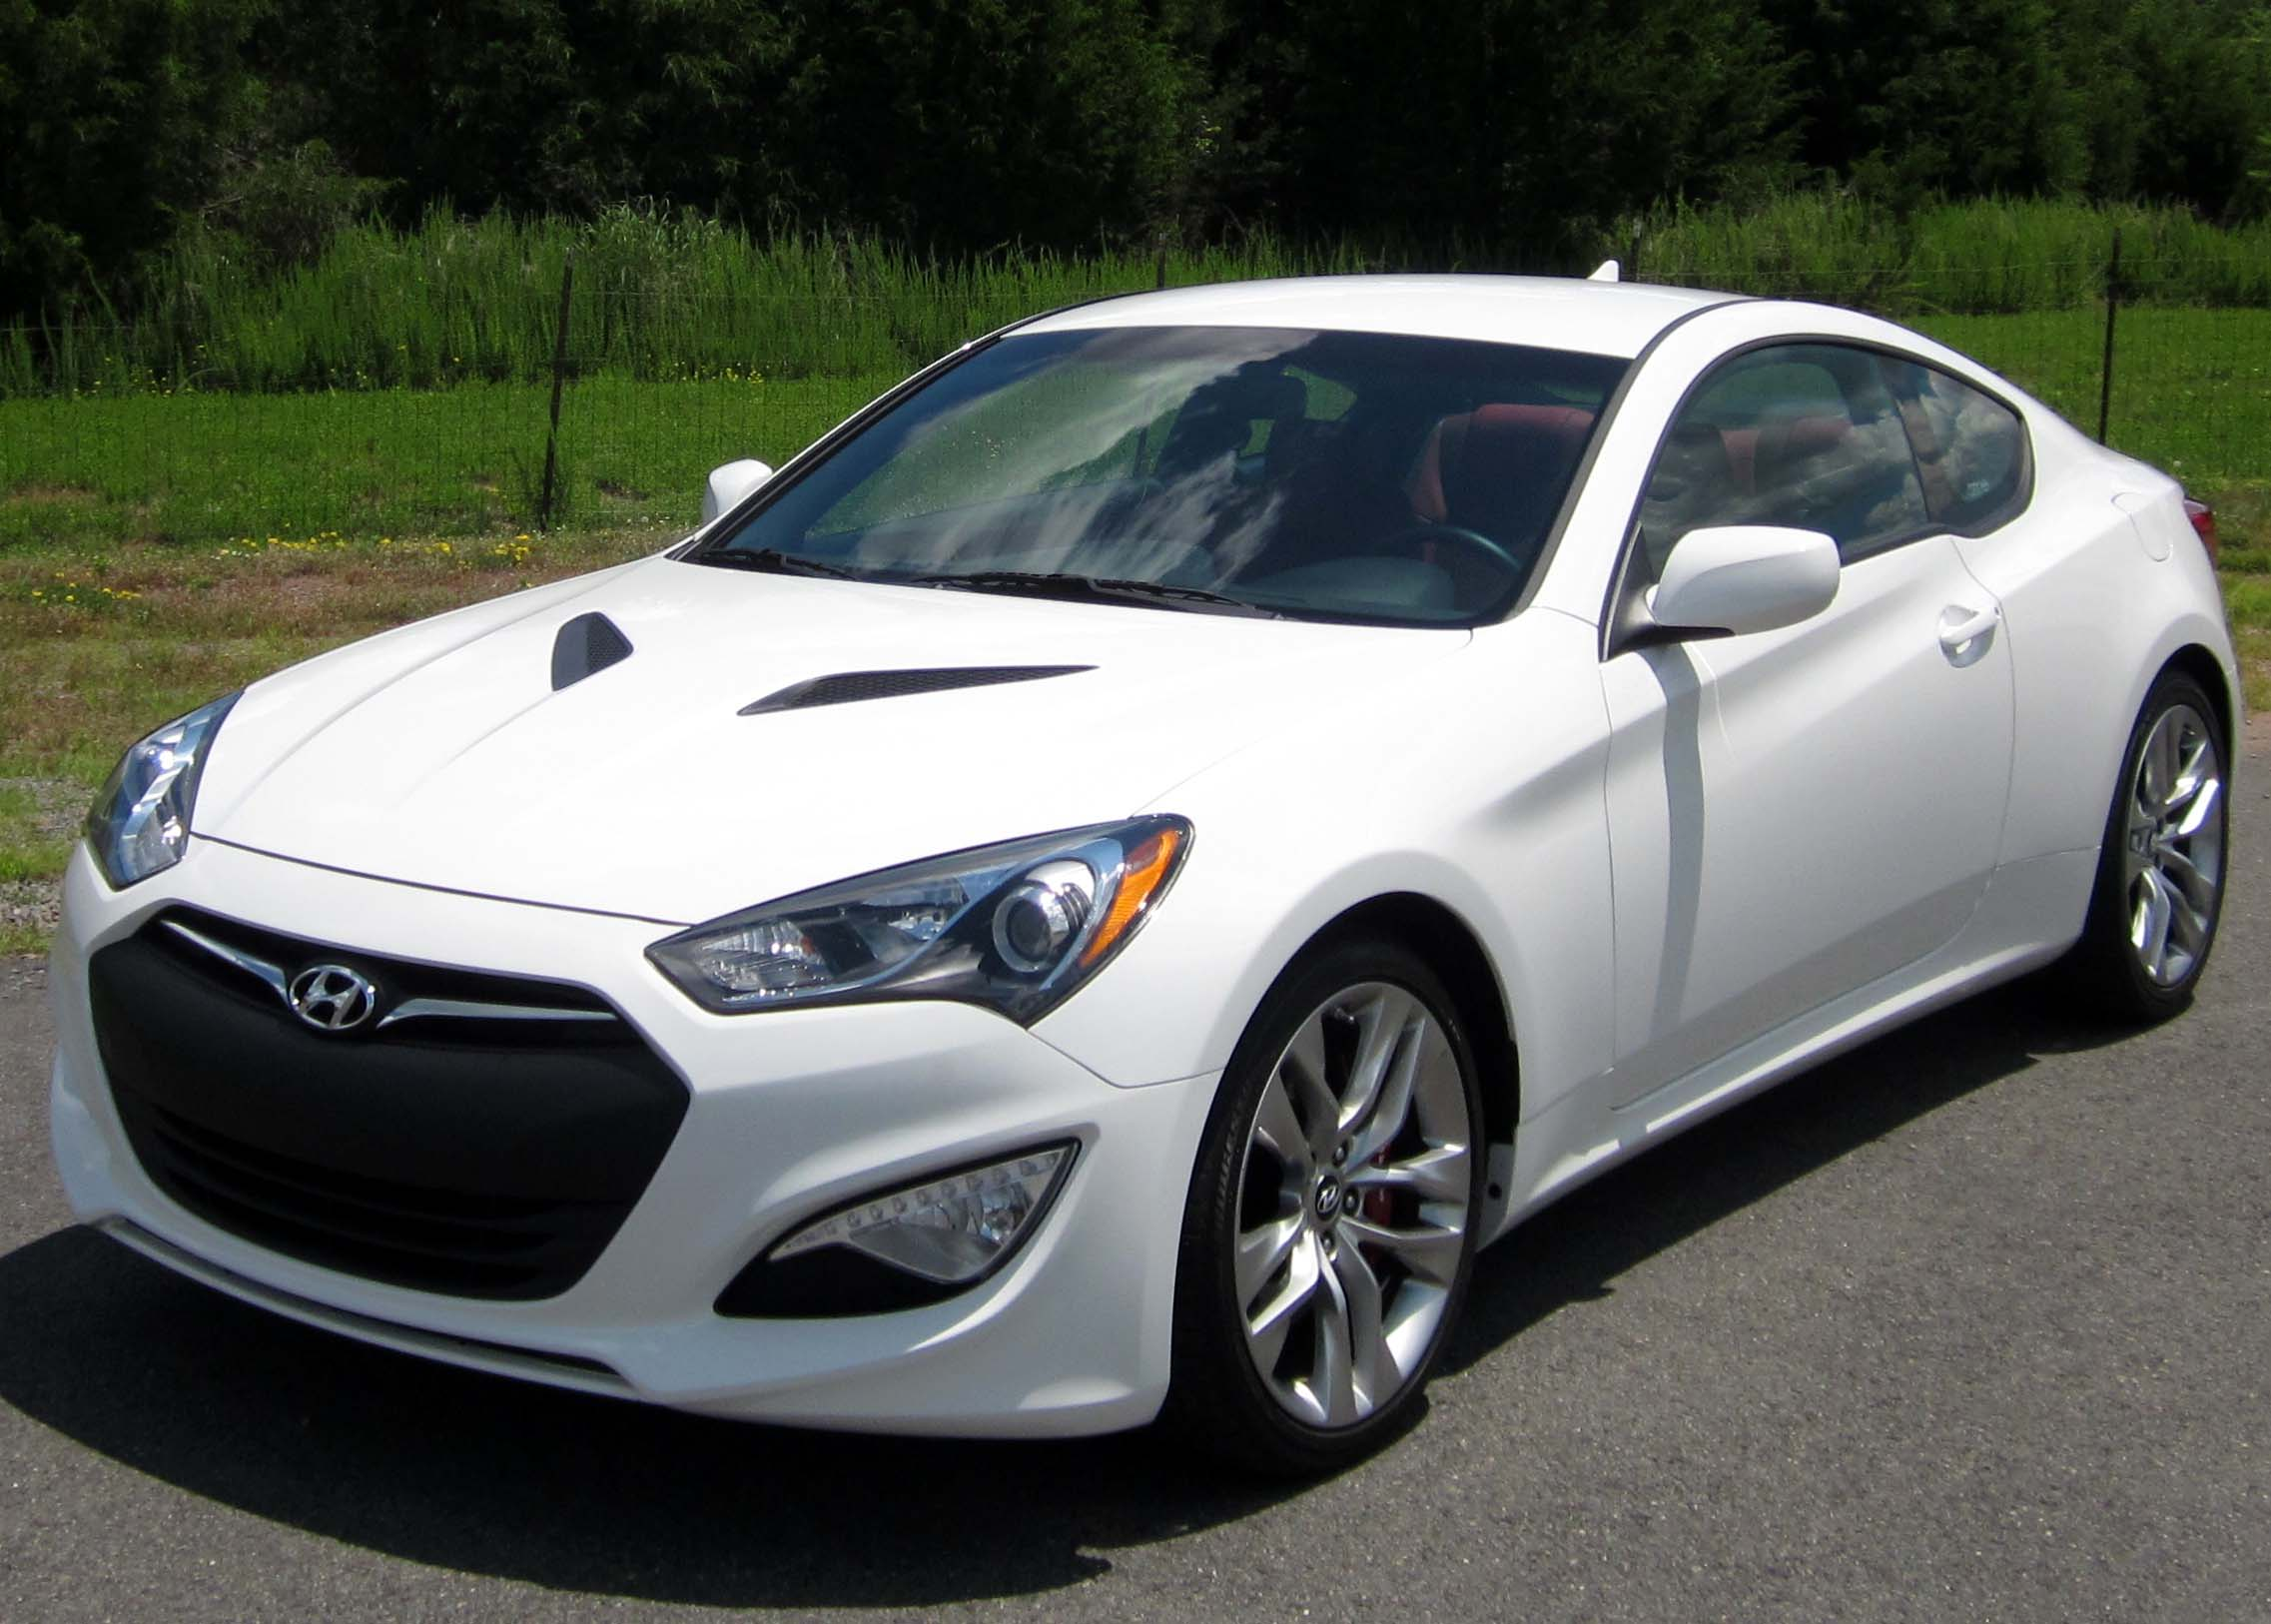 File:2013 Hyundai Genesis Coupe 3.8 R-Spec -- 06-15-